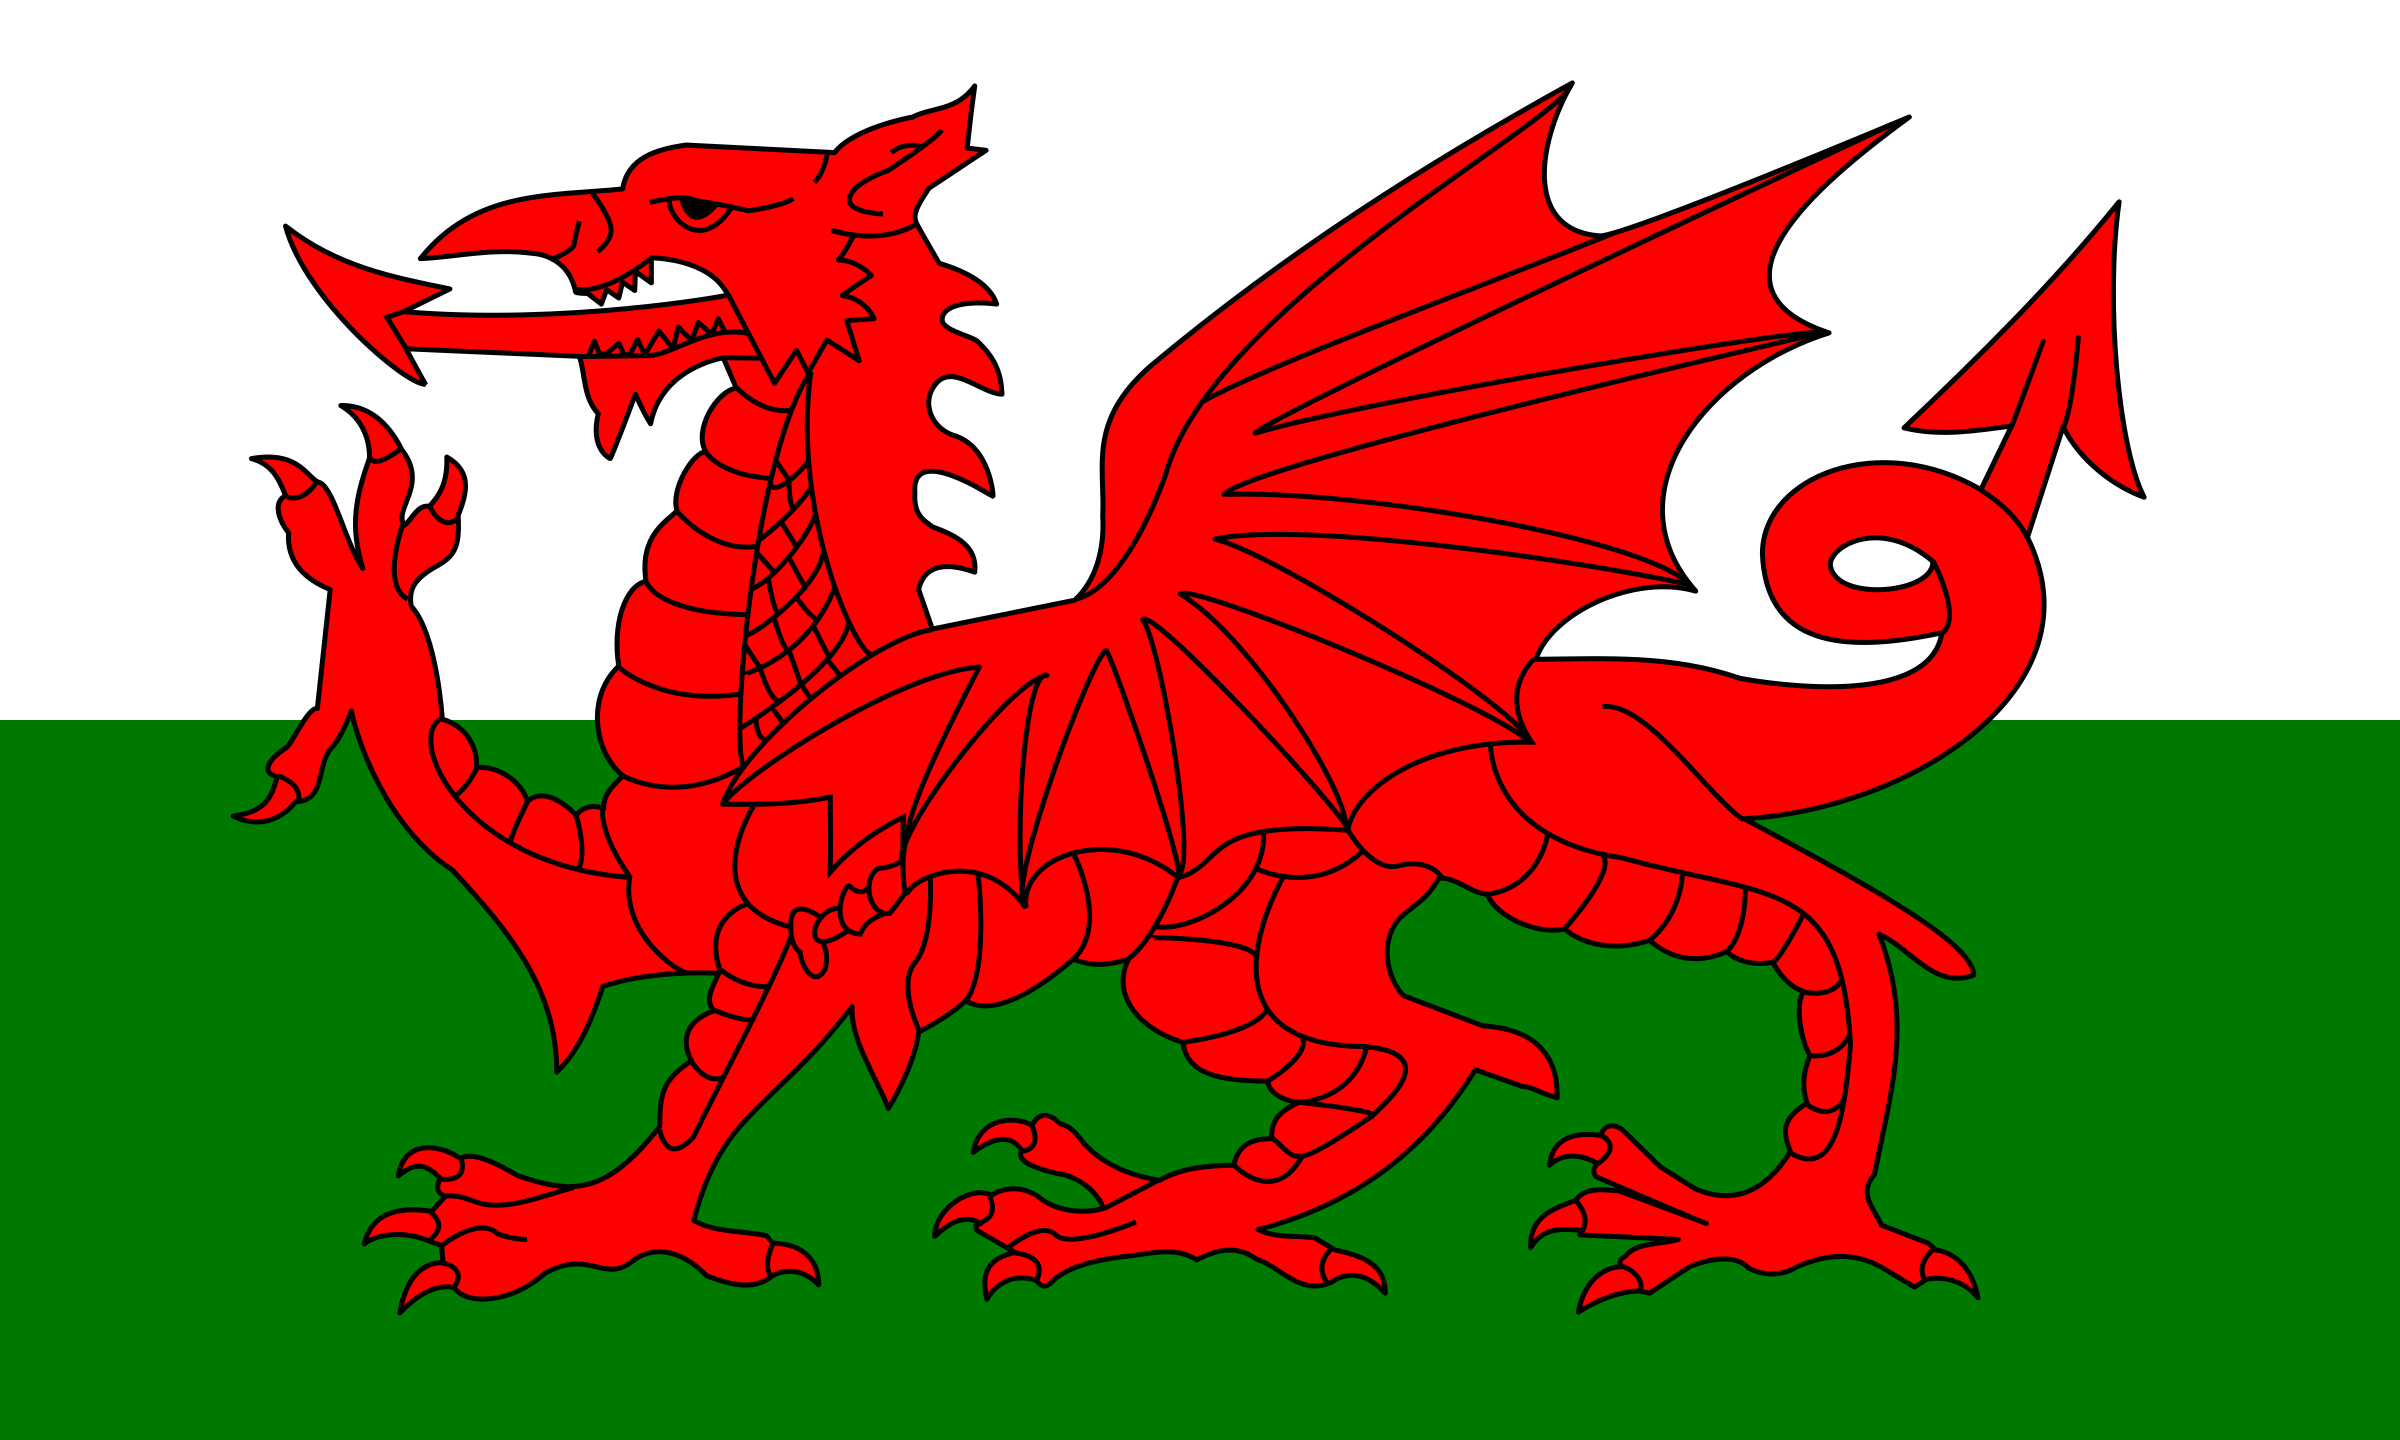 Flag of Wales - United Kingdom by tobias